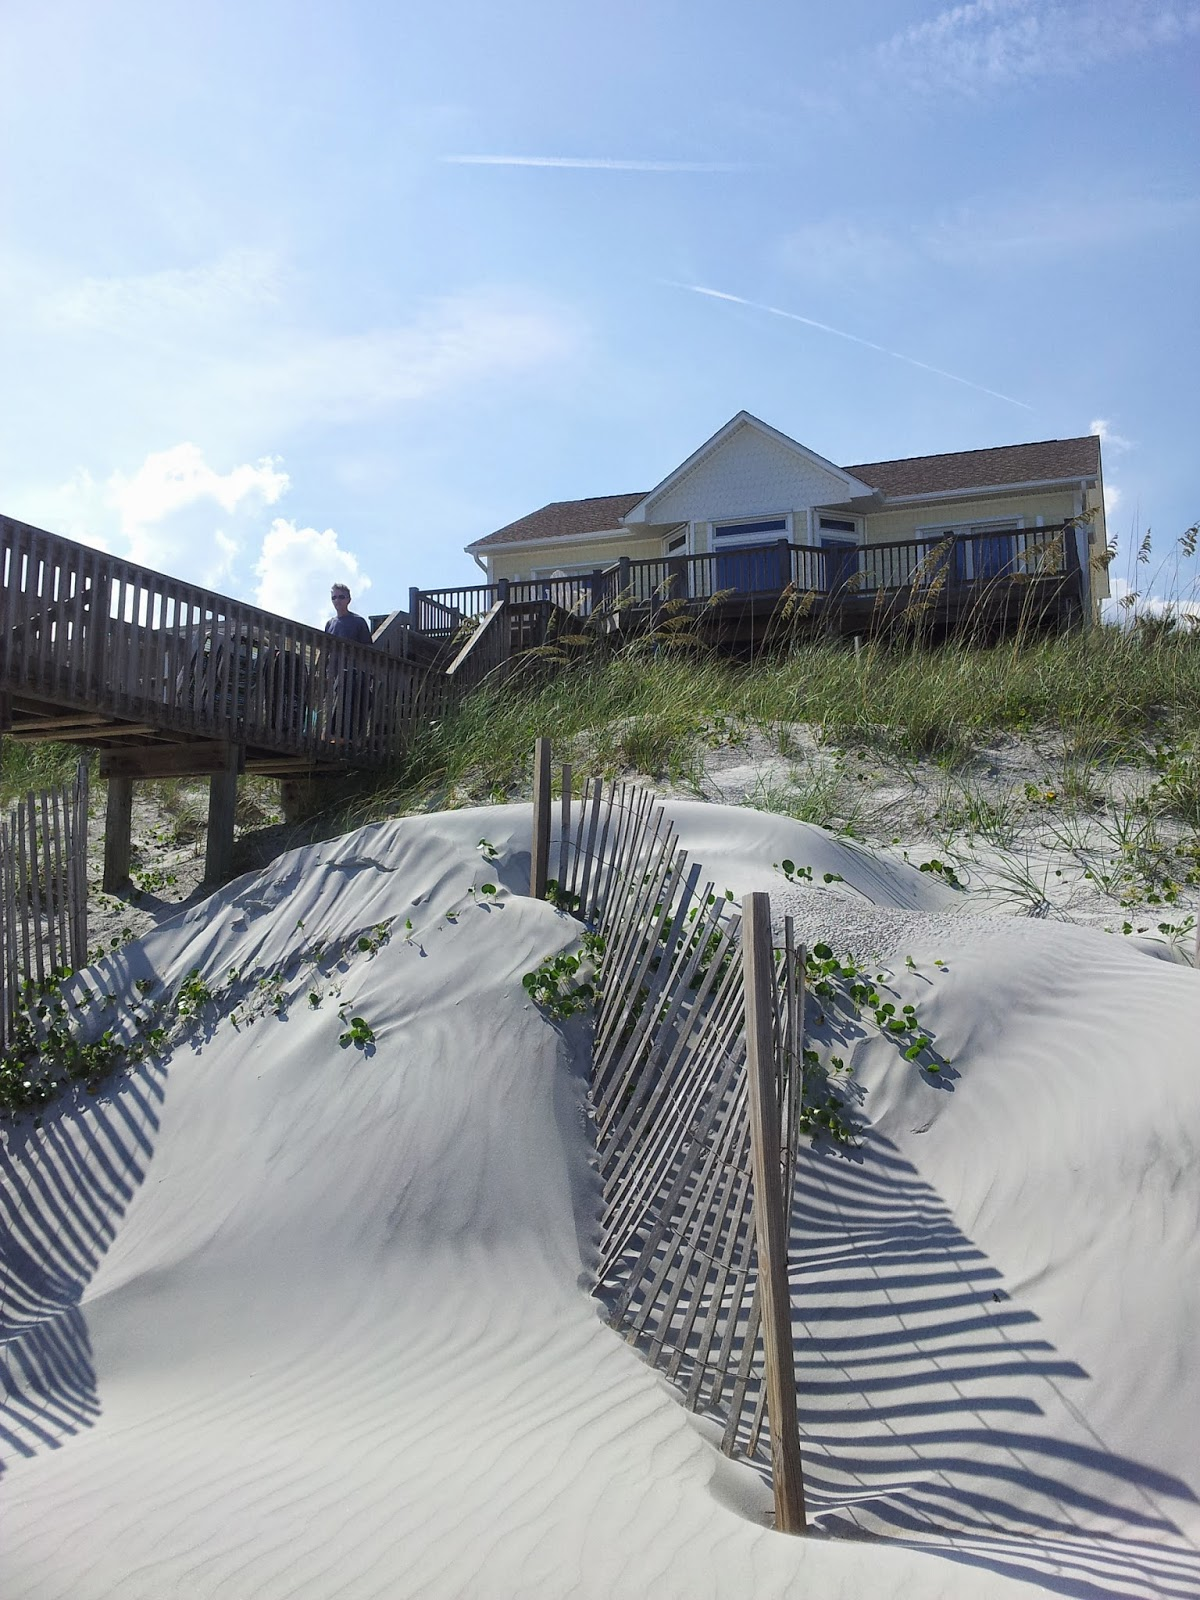 Carolina Beaches of Yesteryear:  Topsail Beach